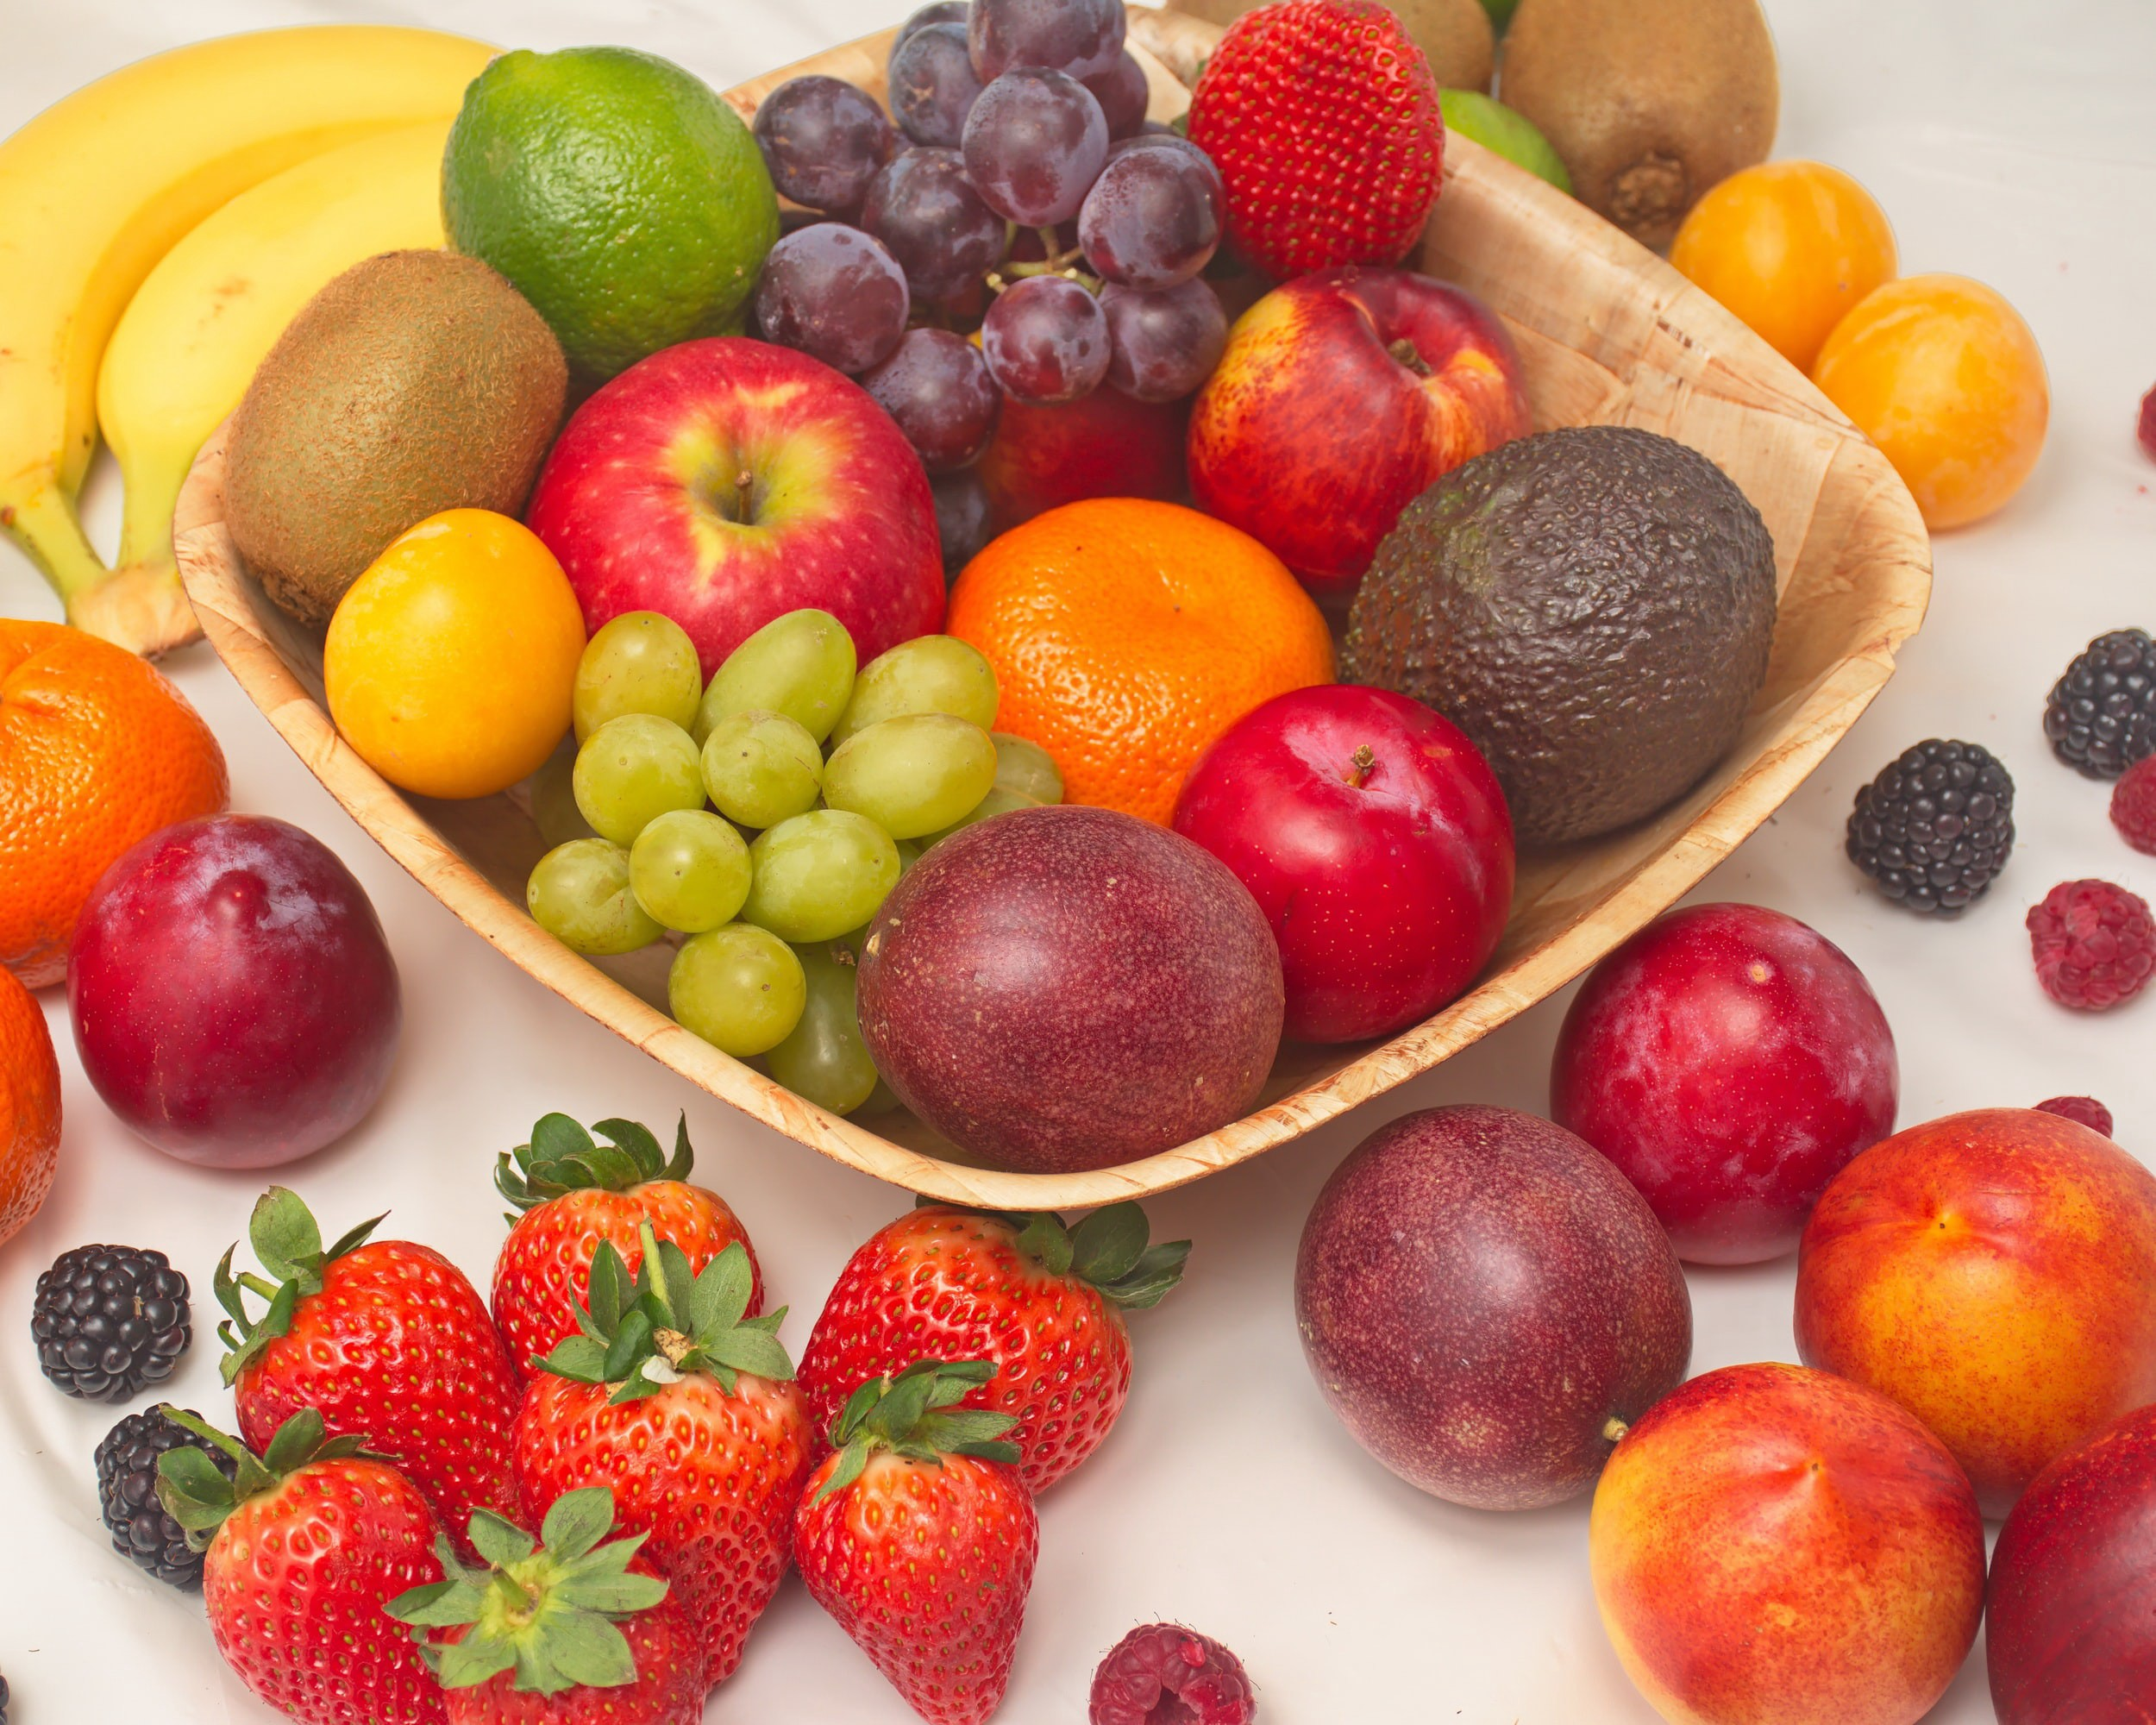 selection of colorful fresh fruit in wooden bowl strawberries grapes plumbs avocado berries